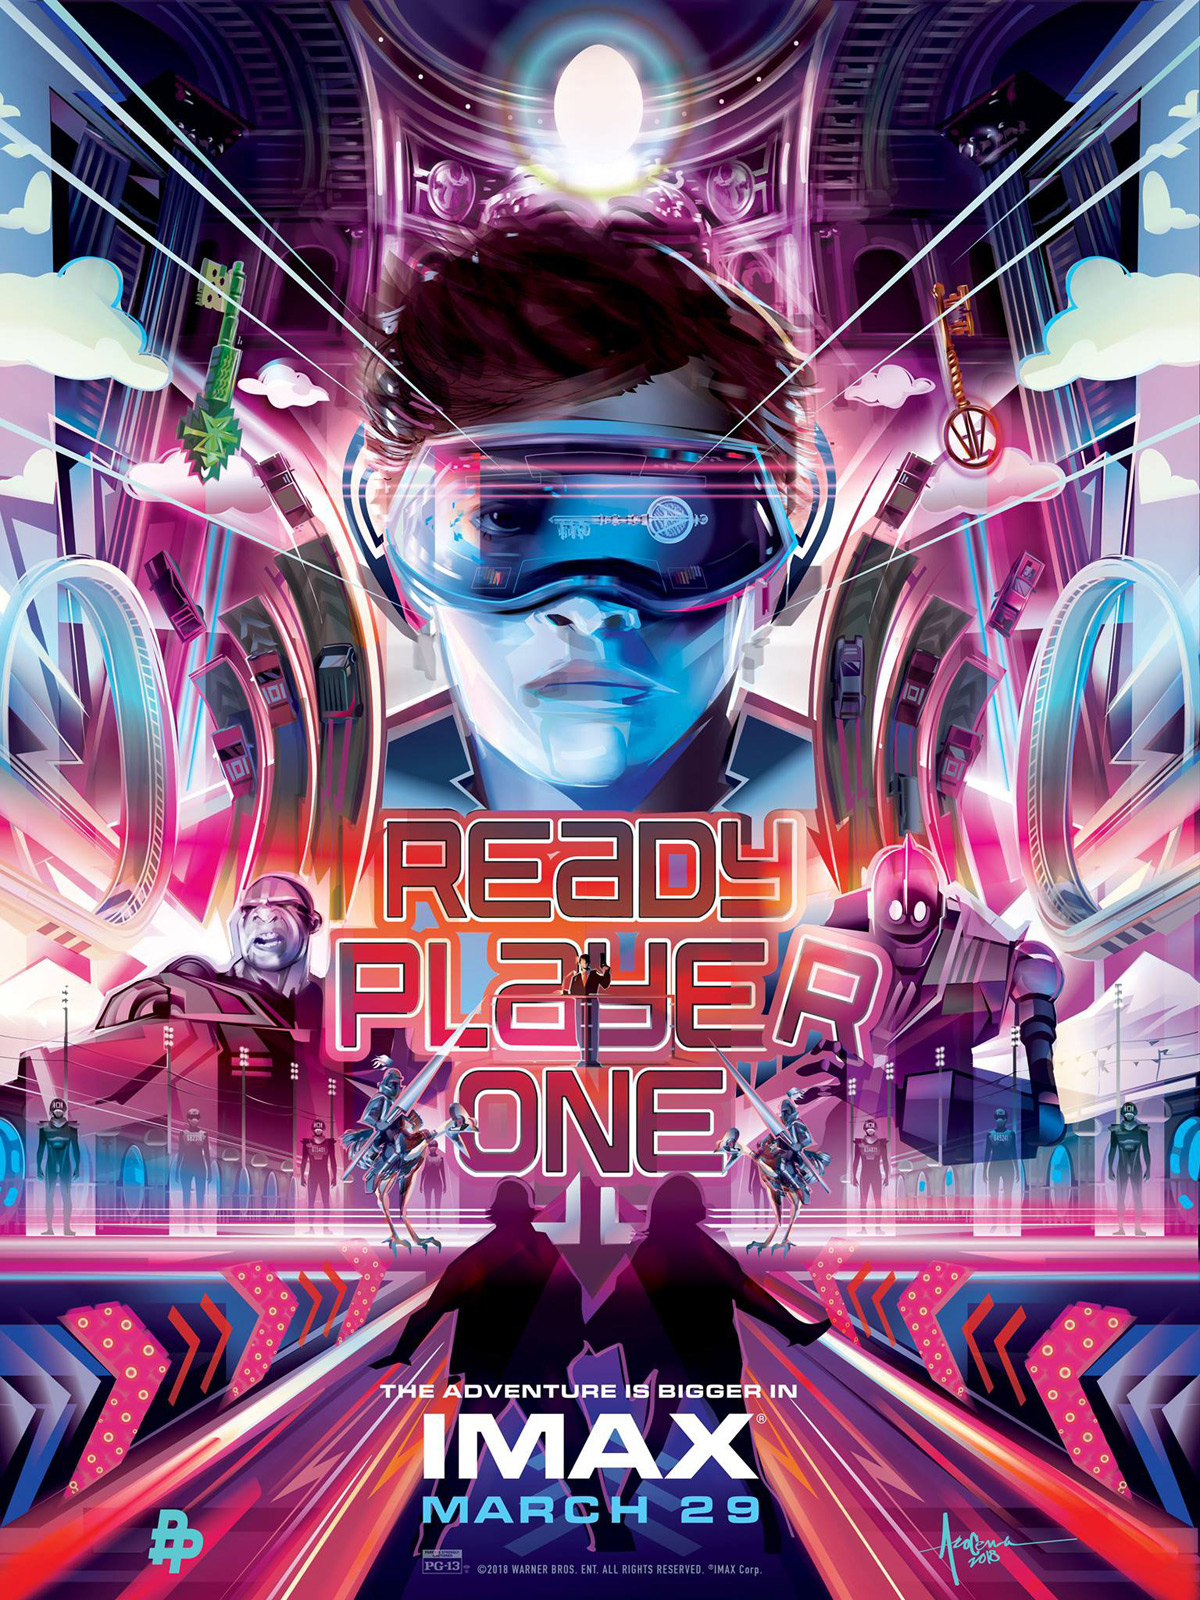 Jaquettes Dvd Et Blu Ray Du Film Ready Player One